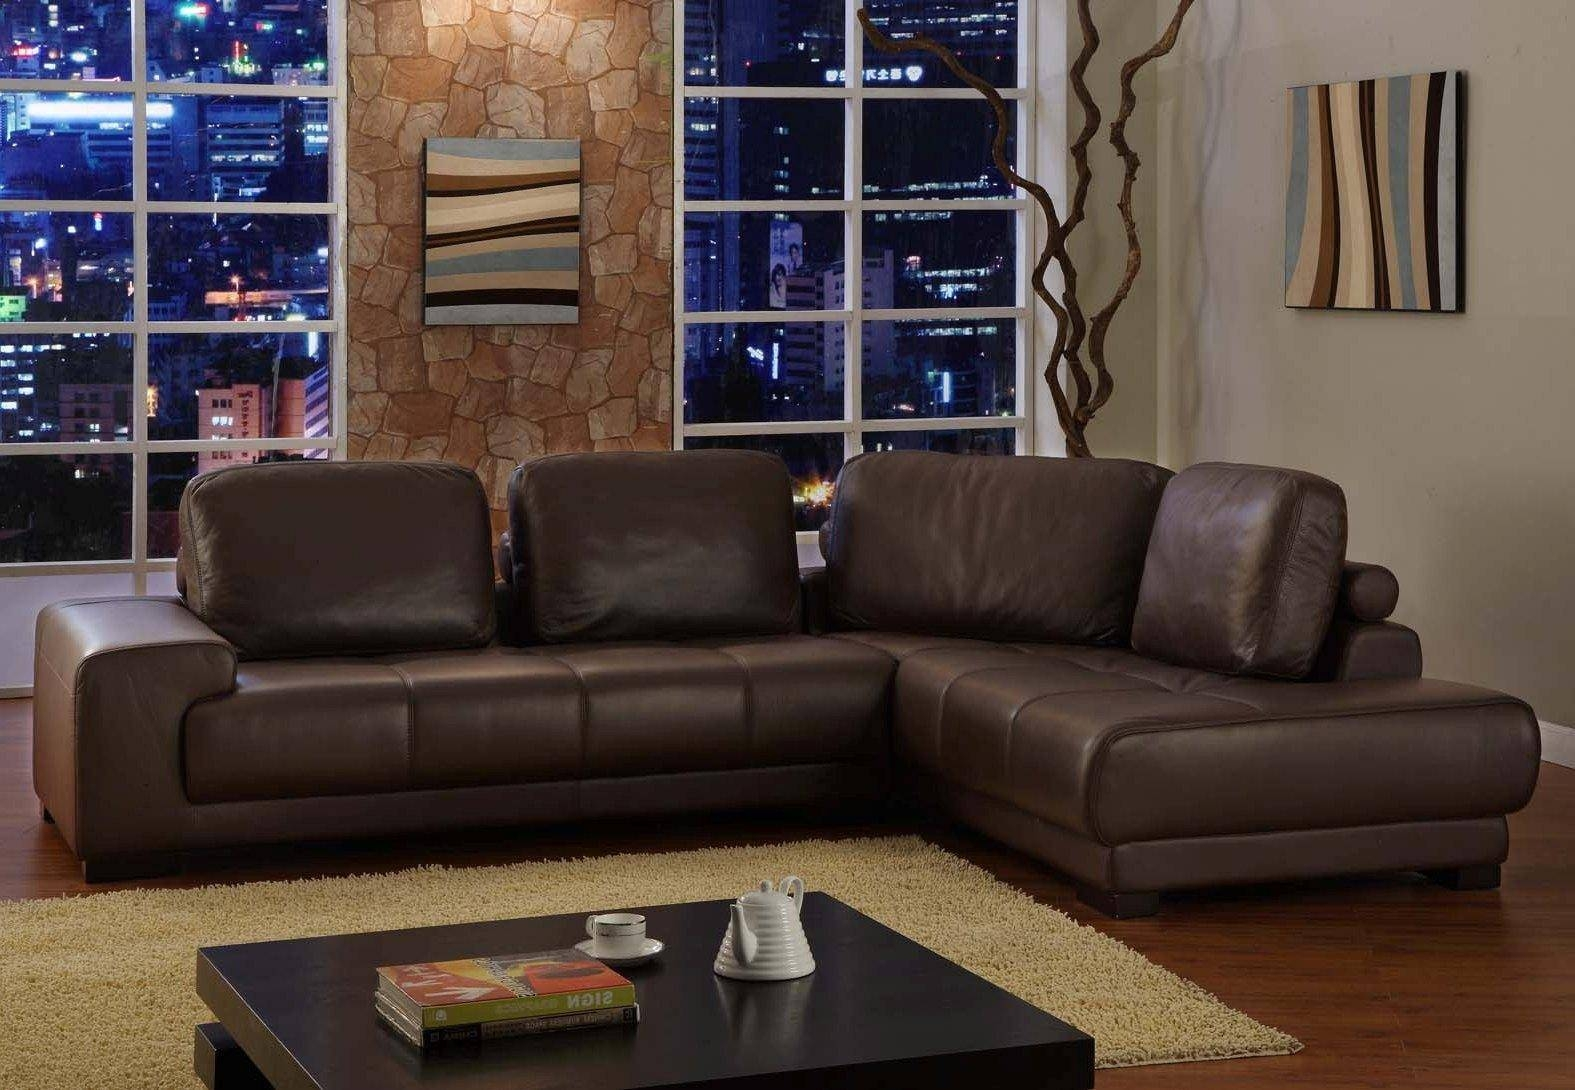 Sofas Center : Jcpenney Sectional Sofa Sale Sofas Jcpenneyjcpenney Pertaining To Jcpenney Sectional Sofas (View 7 of 15)